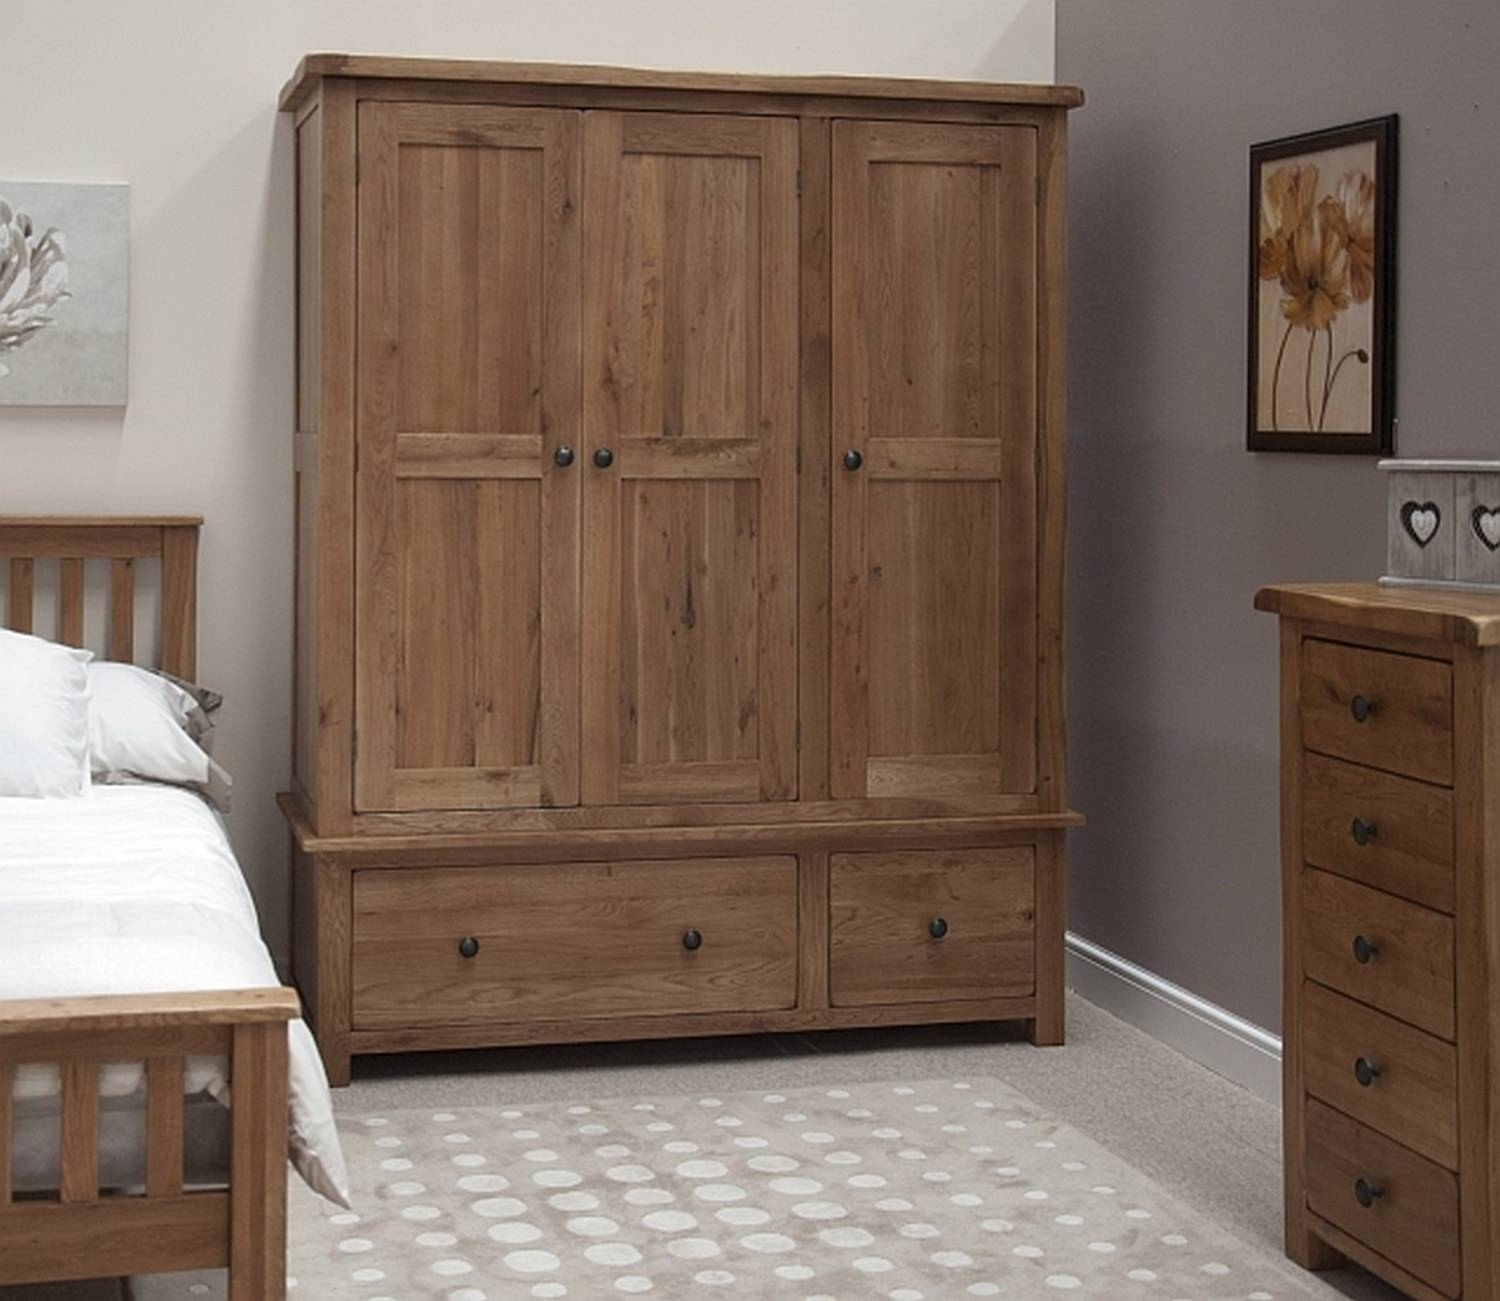 Reclaimed Wood Bedroom Sets Furniture Old Pine Cupboards Solid for Cheap Wardrobes Sets (Image 11 of 15)